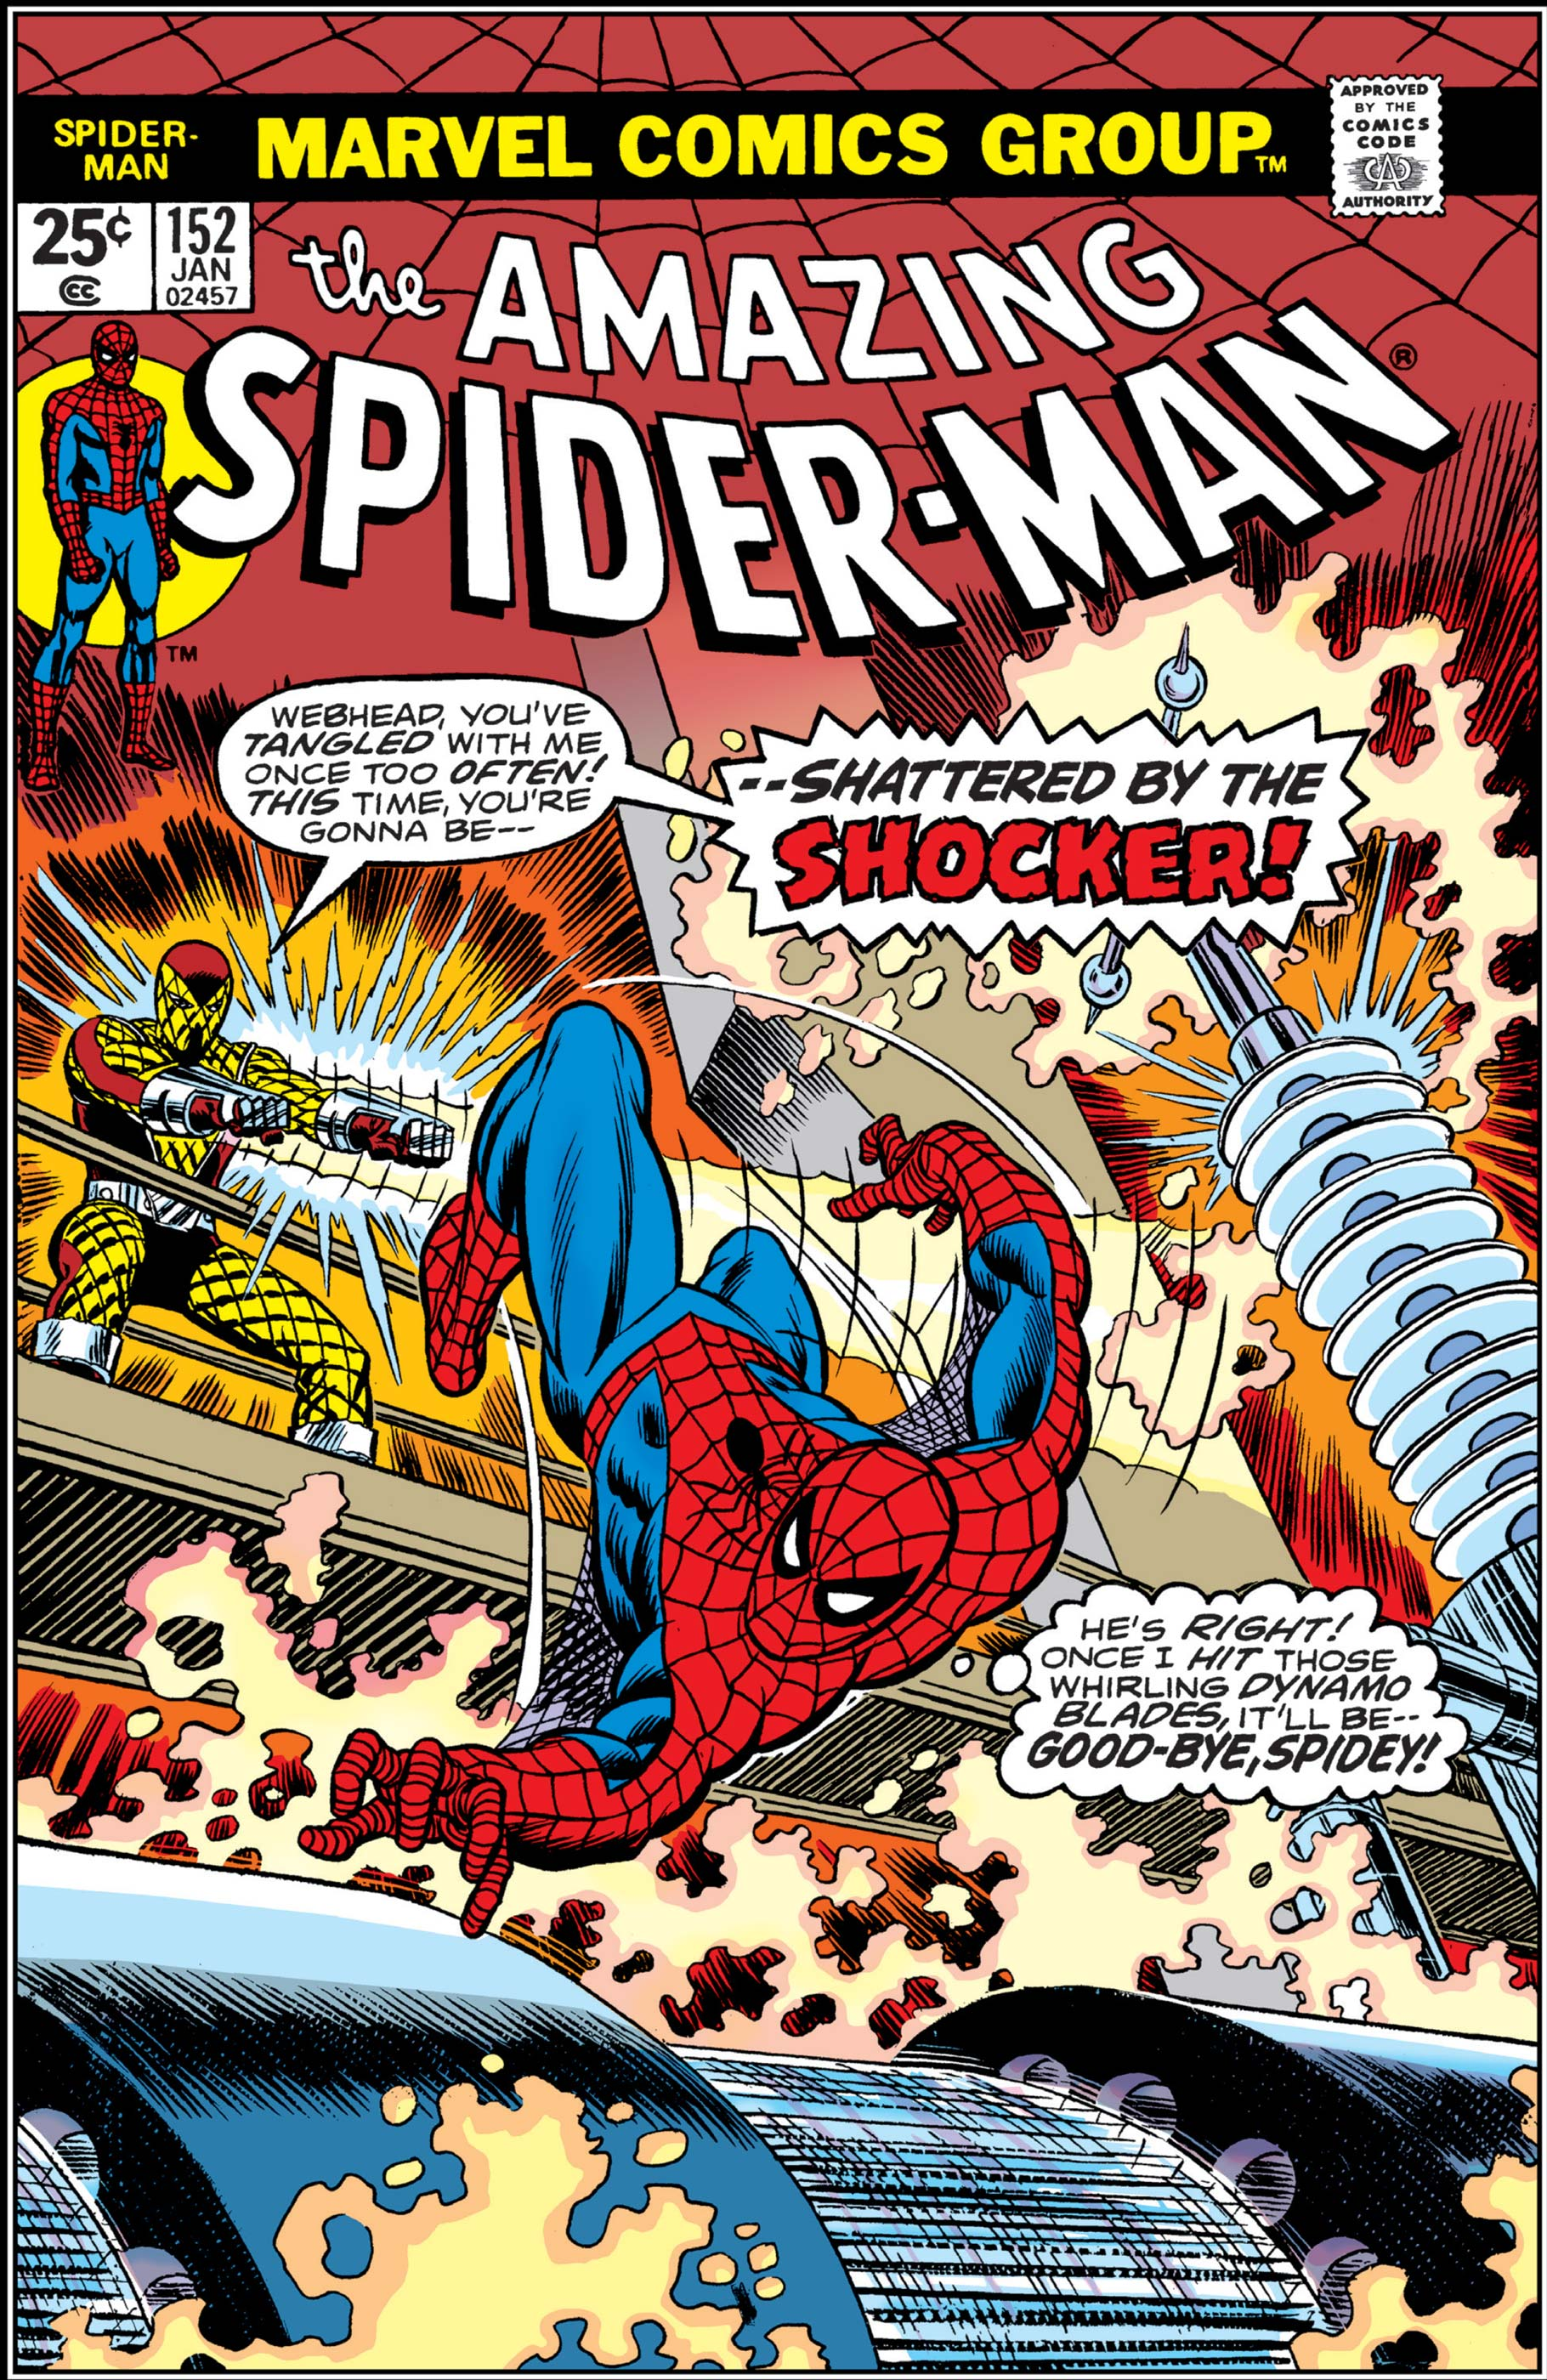 The Amazing Spider-Man (1963) #152